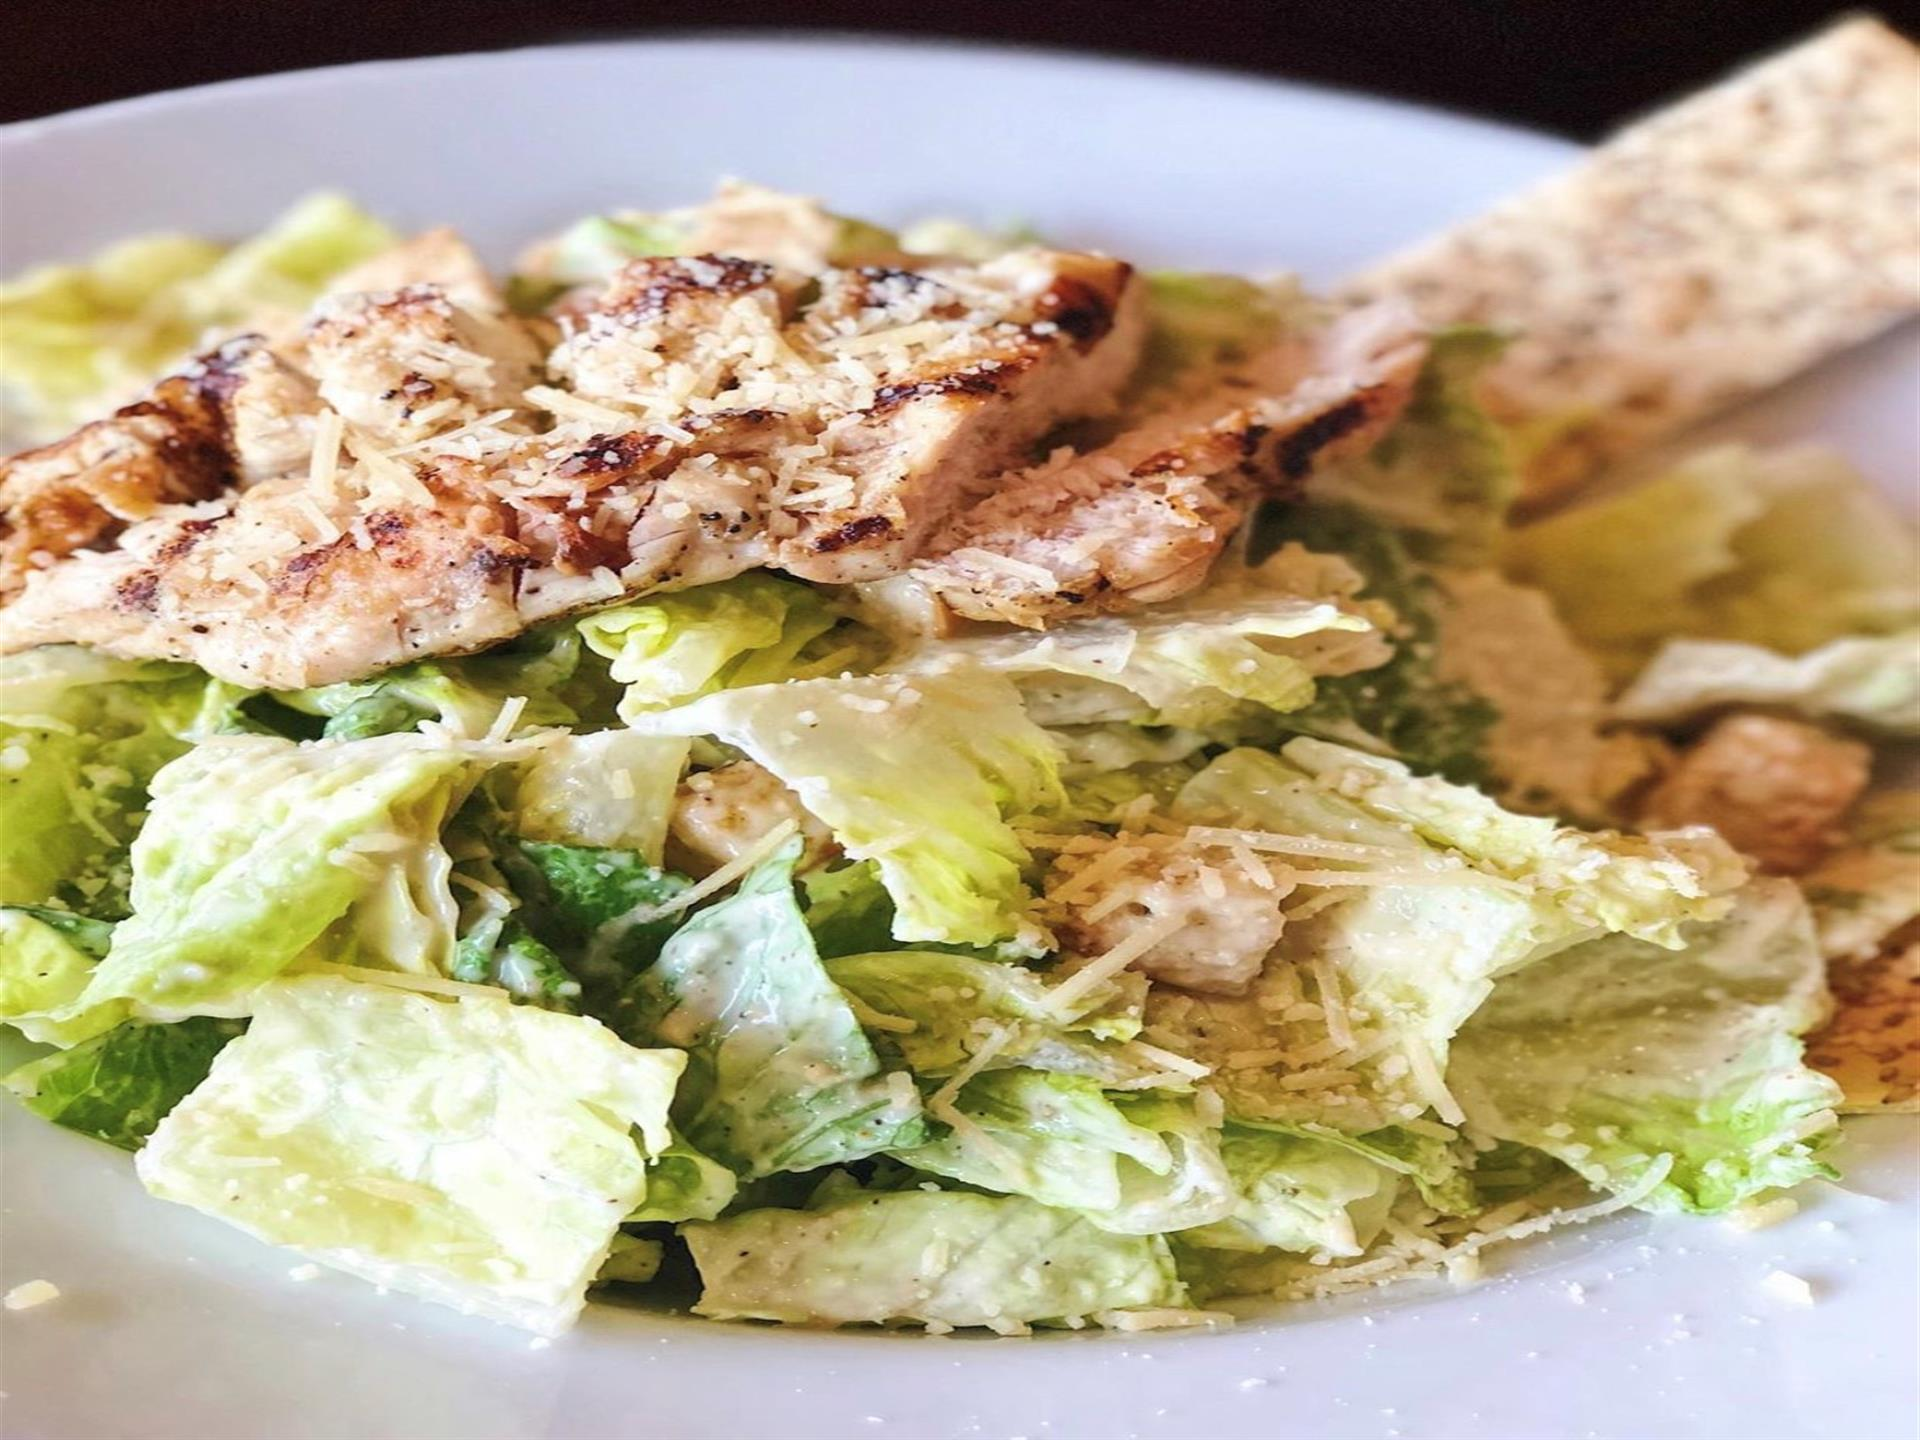 A grilled chicken caesar salad close up.